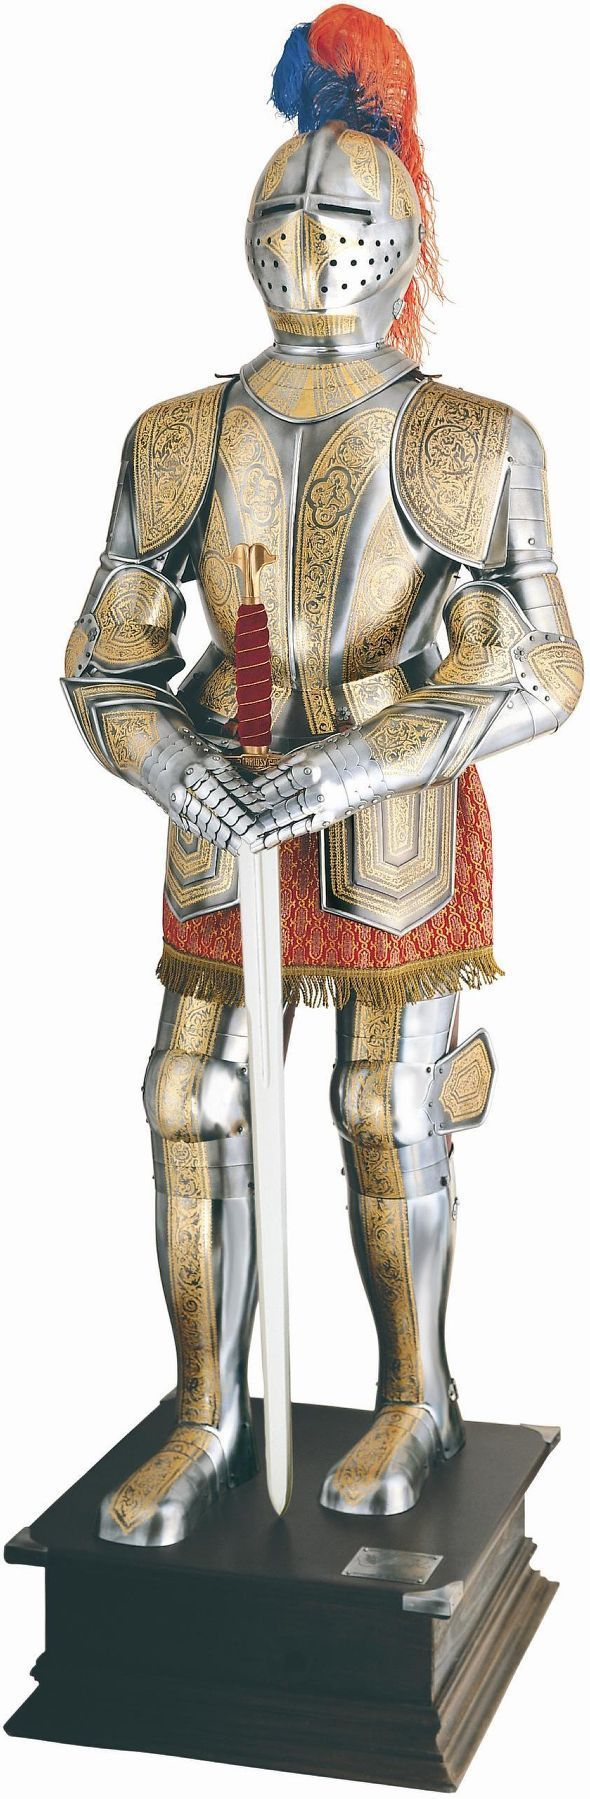 Best 25+ Medieval knight ideas on Pinterest Medieval Knights Armor